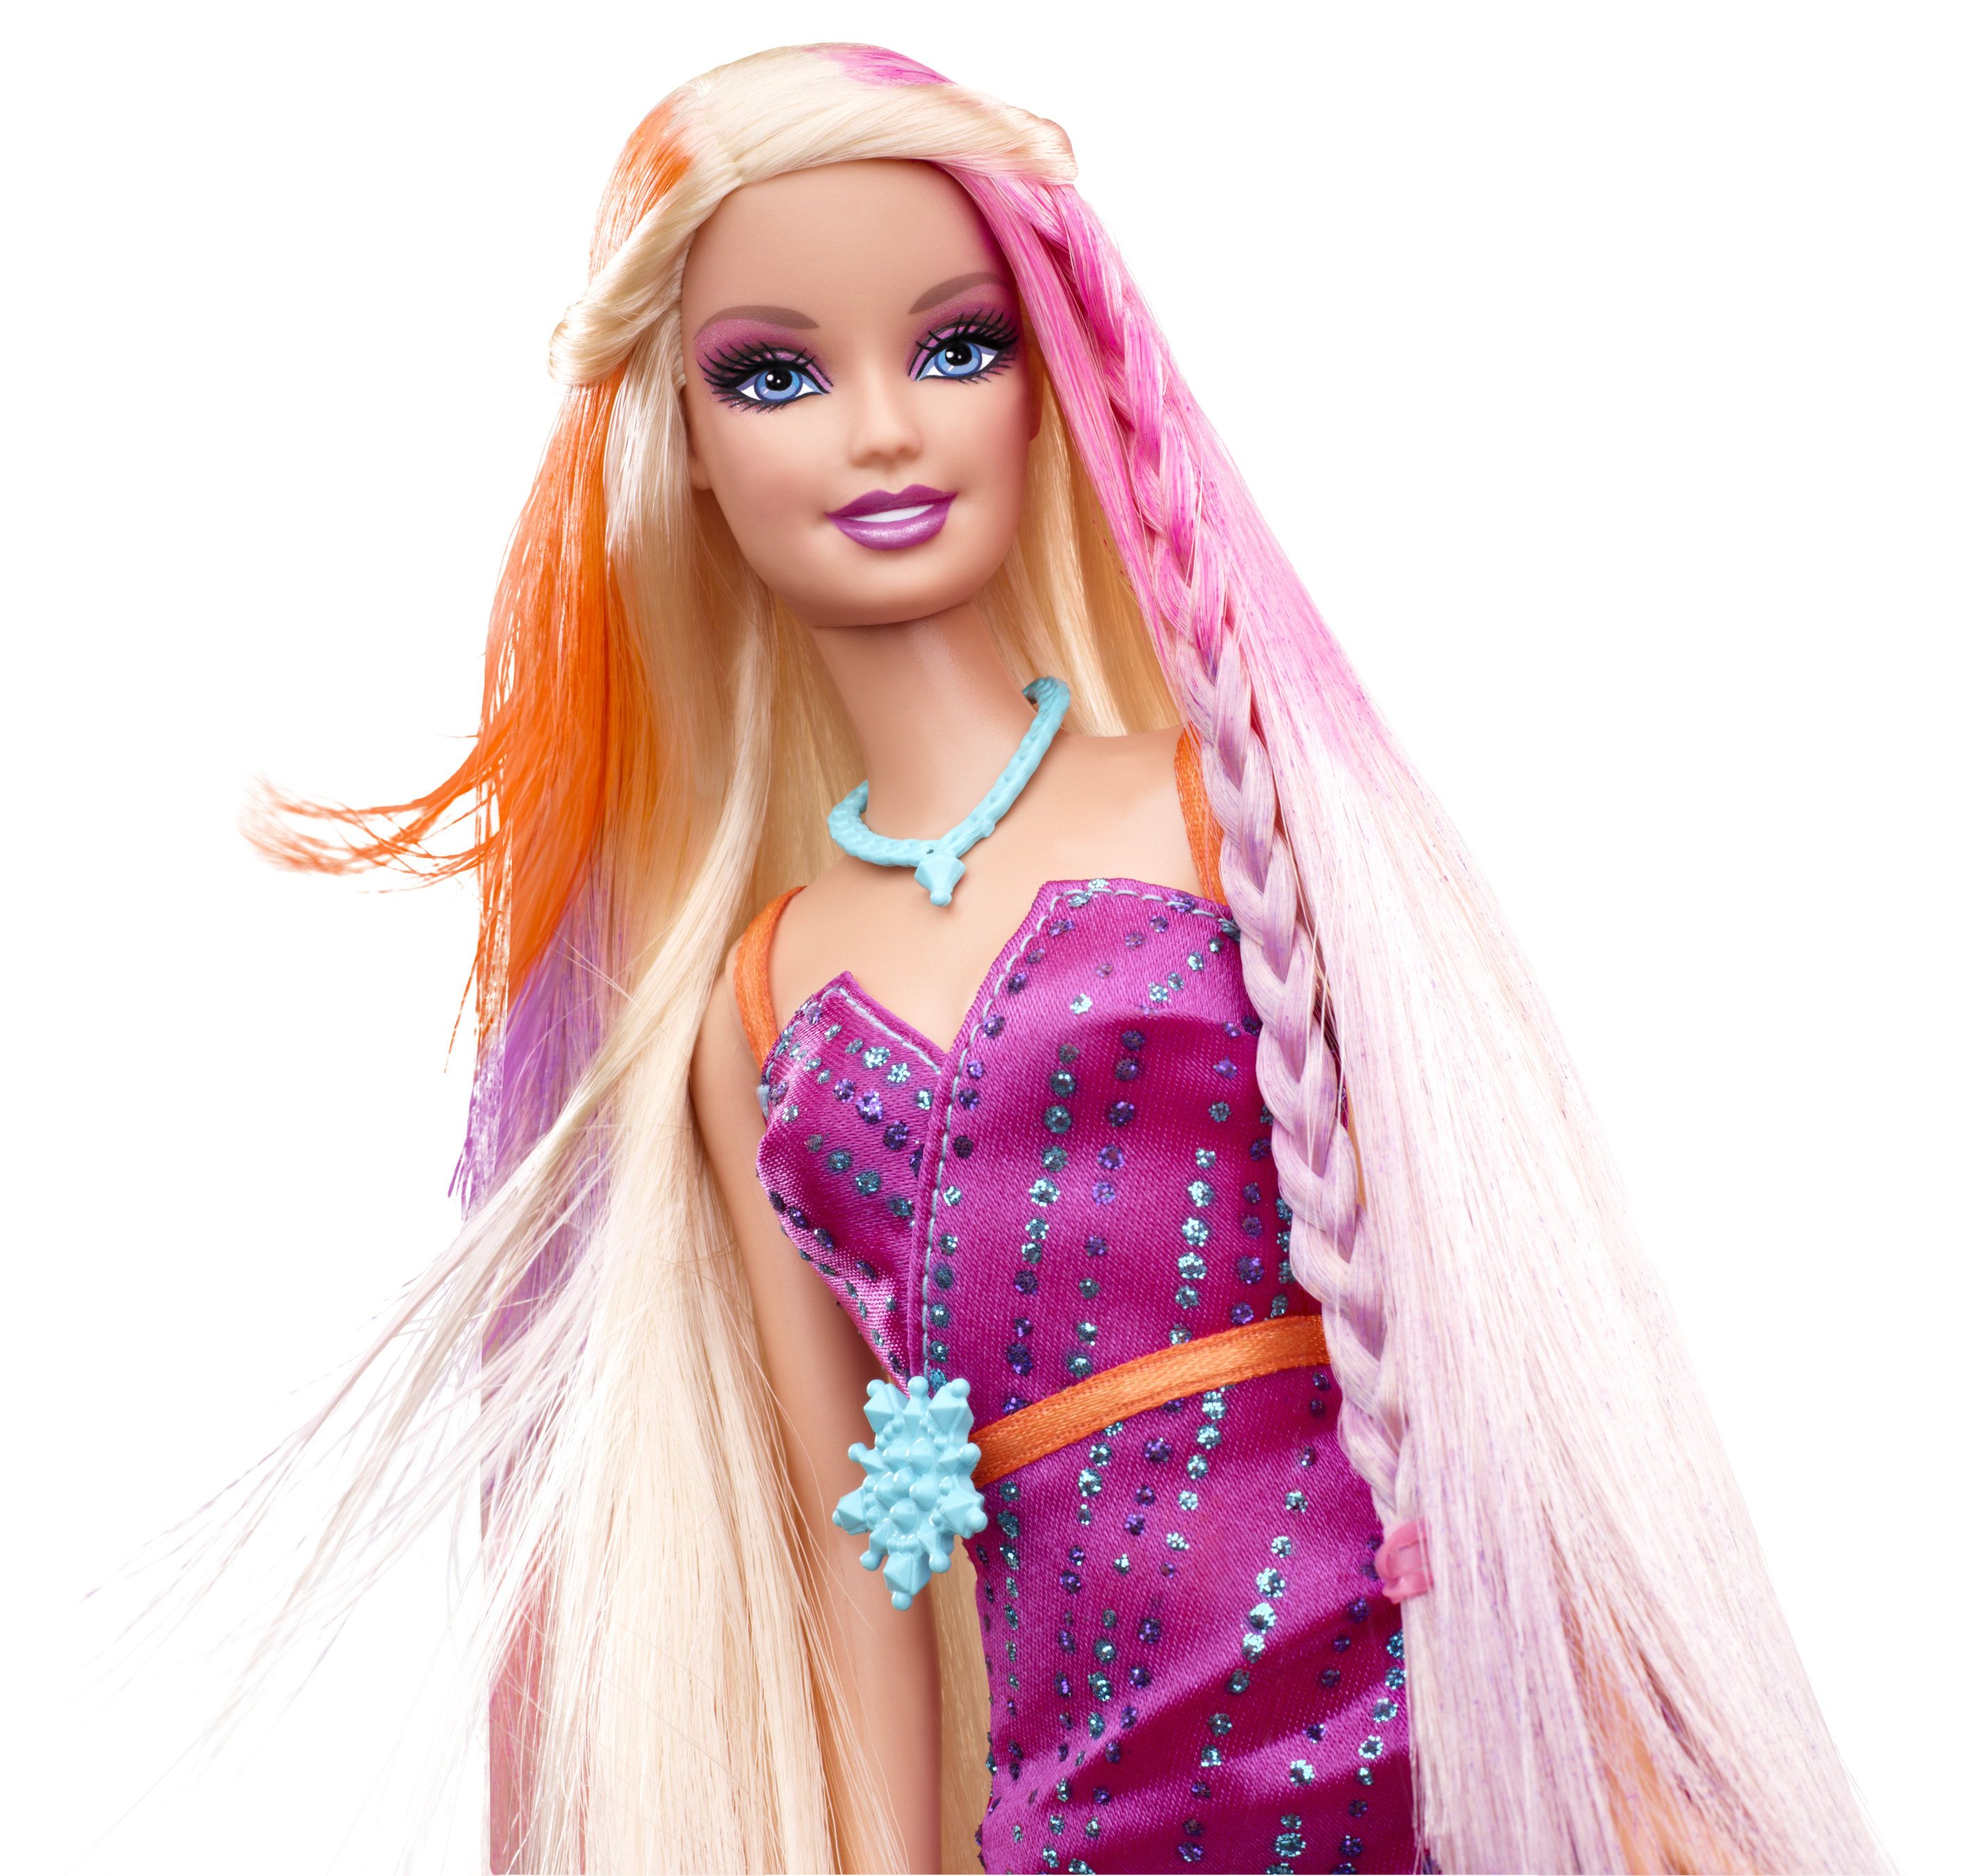 Barbie Hairstyles Beauteous Barbie Doll Hairstyles  Barbie Doll Stylish Hairstylefashionsfor